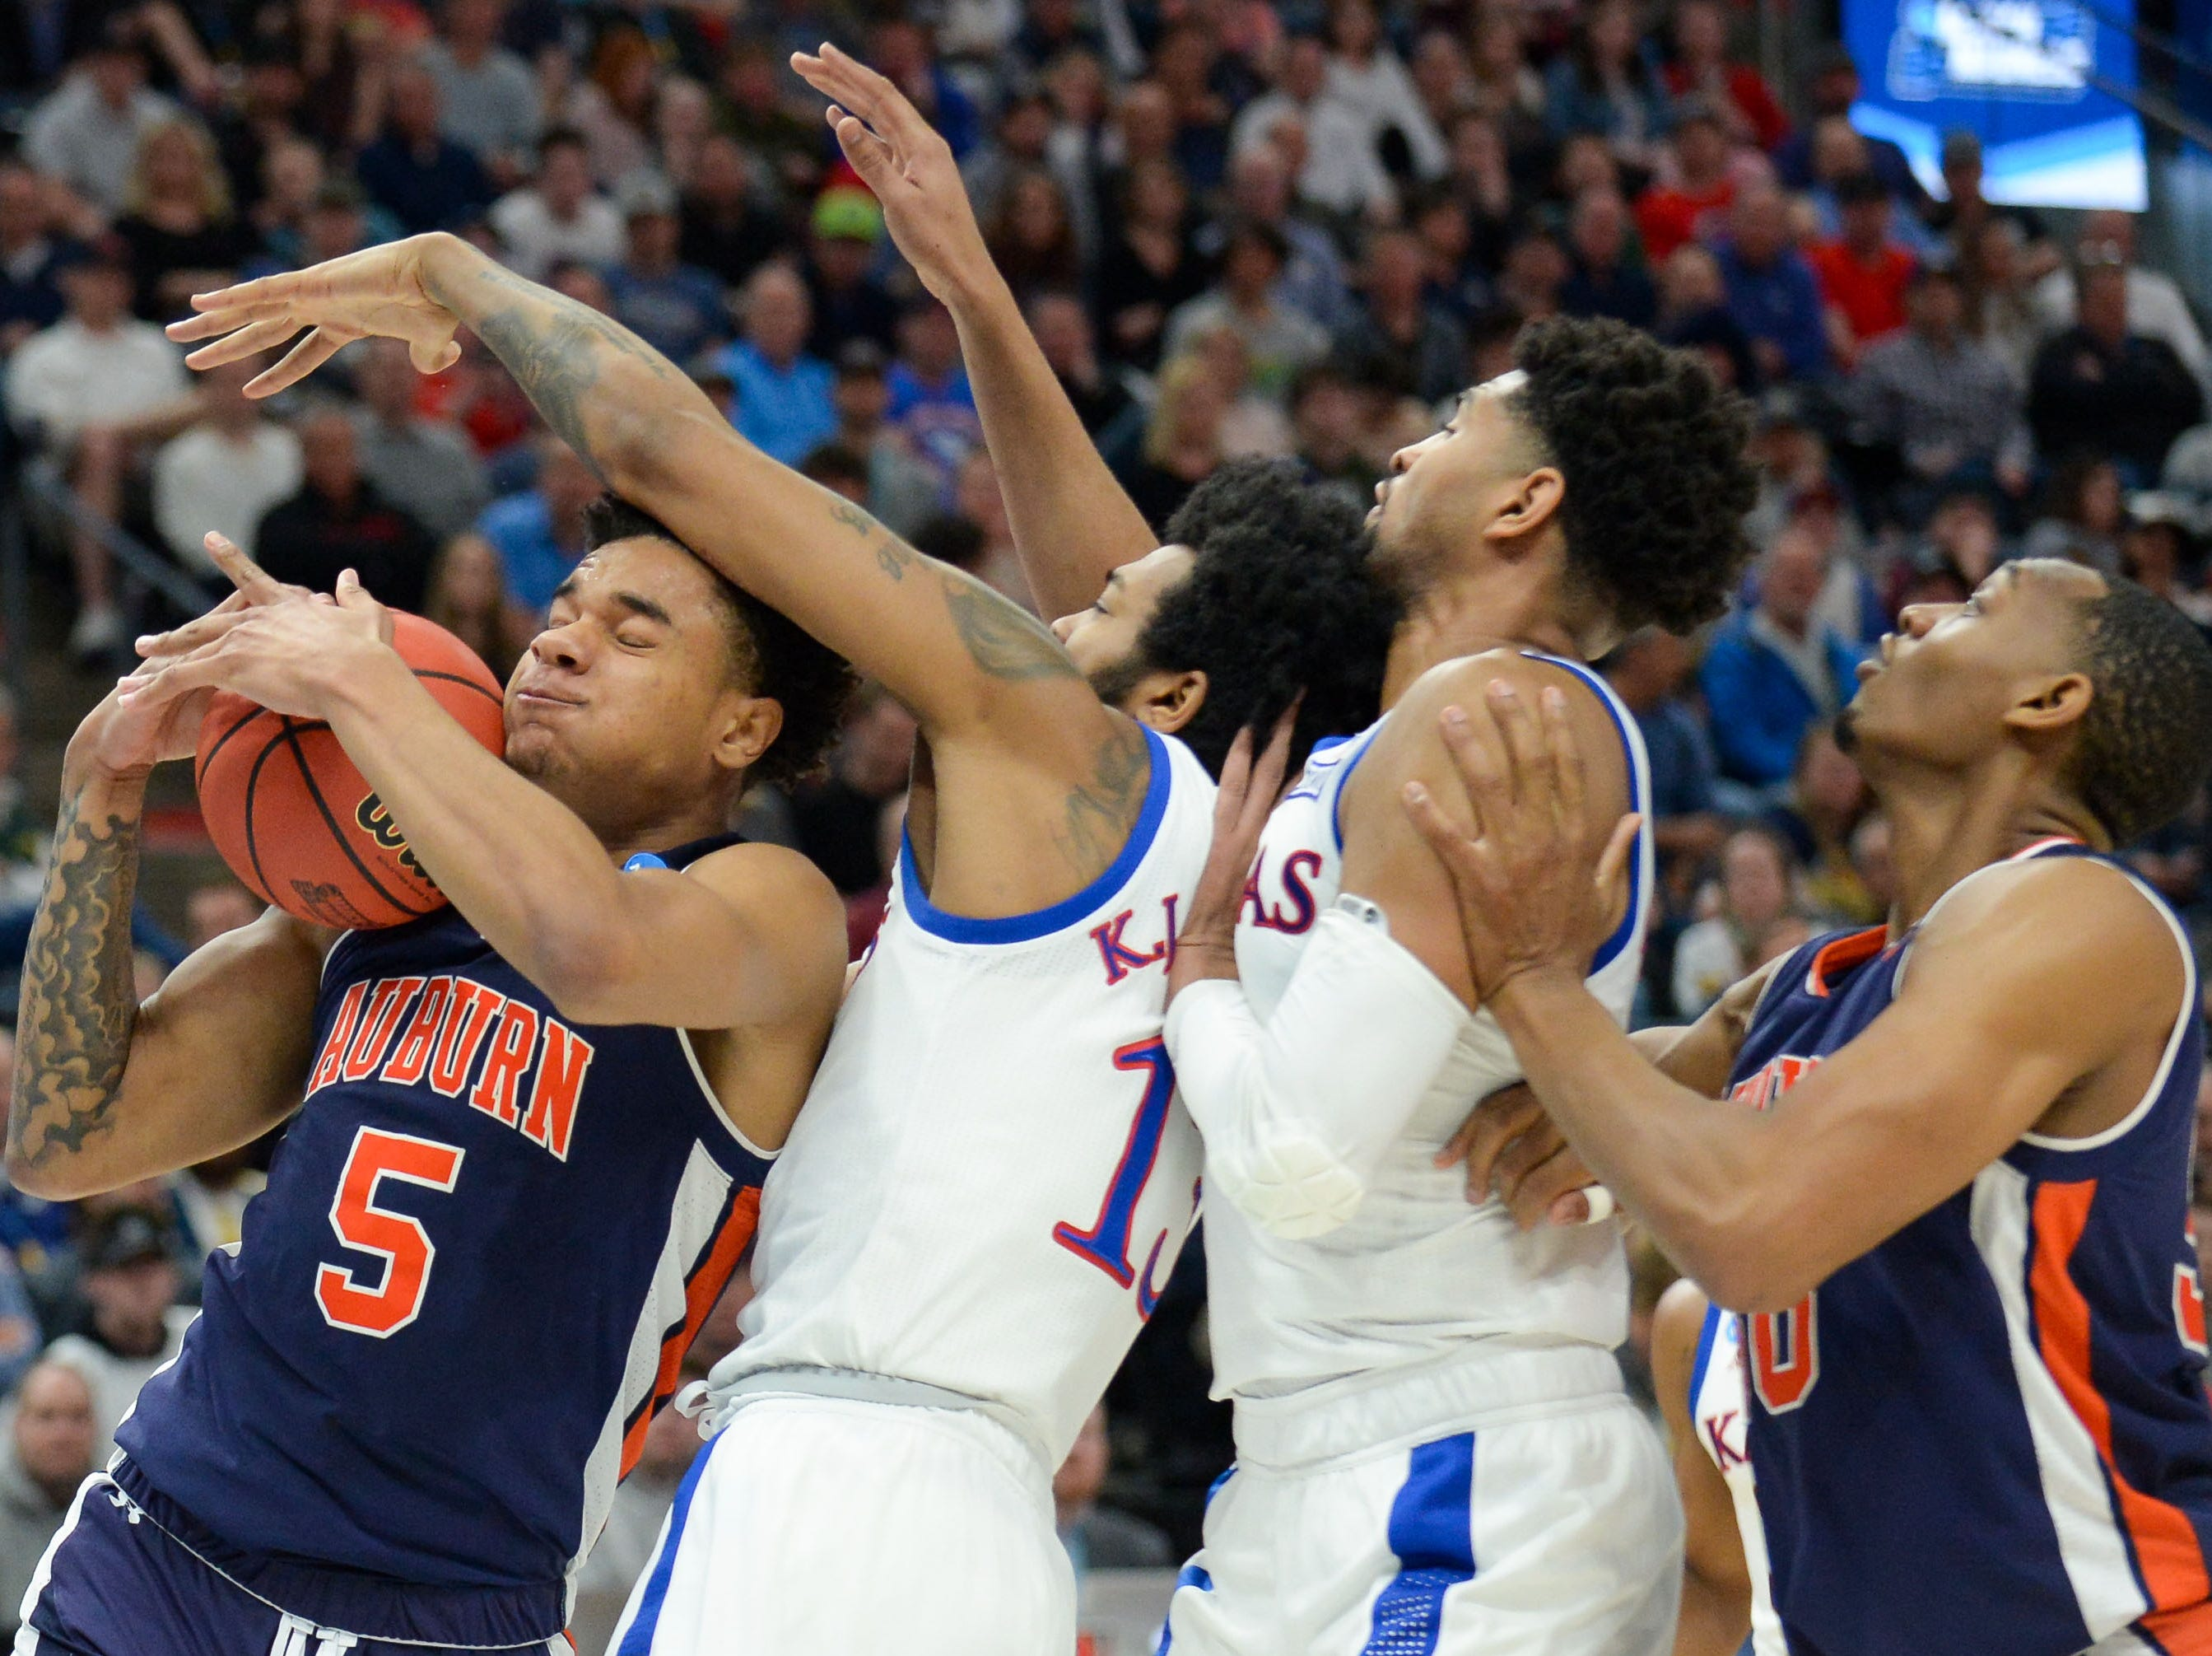 Mar 23, 2019; Salt Lake City, UT, USA; Auburn Tigers forward Chuma Okeke (5) holds onto the ball as he falls into Kansas Jayhawks guard K.J. Lawson (13) during the first half in the second round of the 2019 NCAA Tournament at Vivint Smart Home Arena. Mandatory Credit: Gary A. Vasquez-USA TODAY Sports